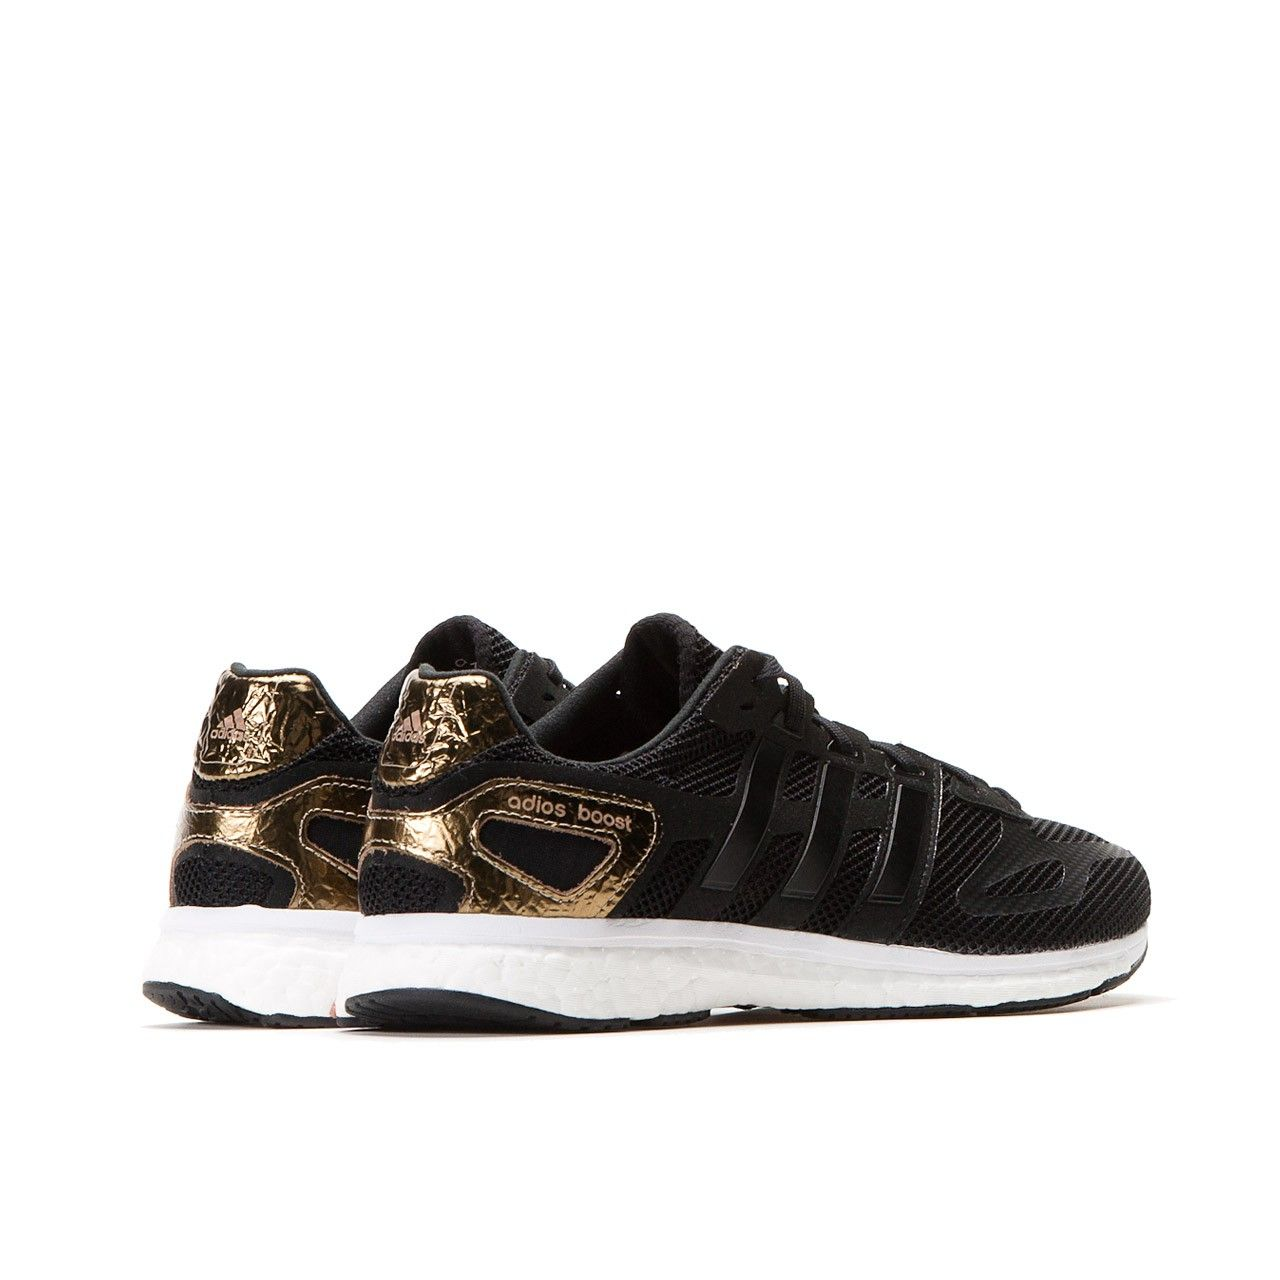 adidas adios boost black gold